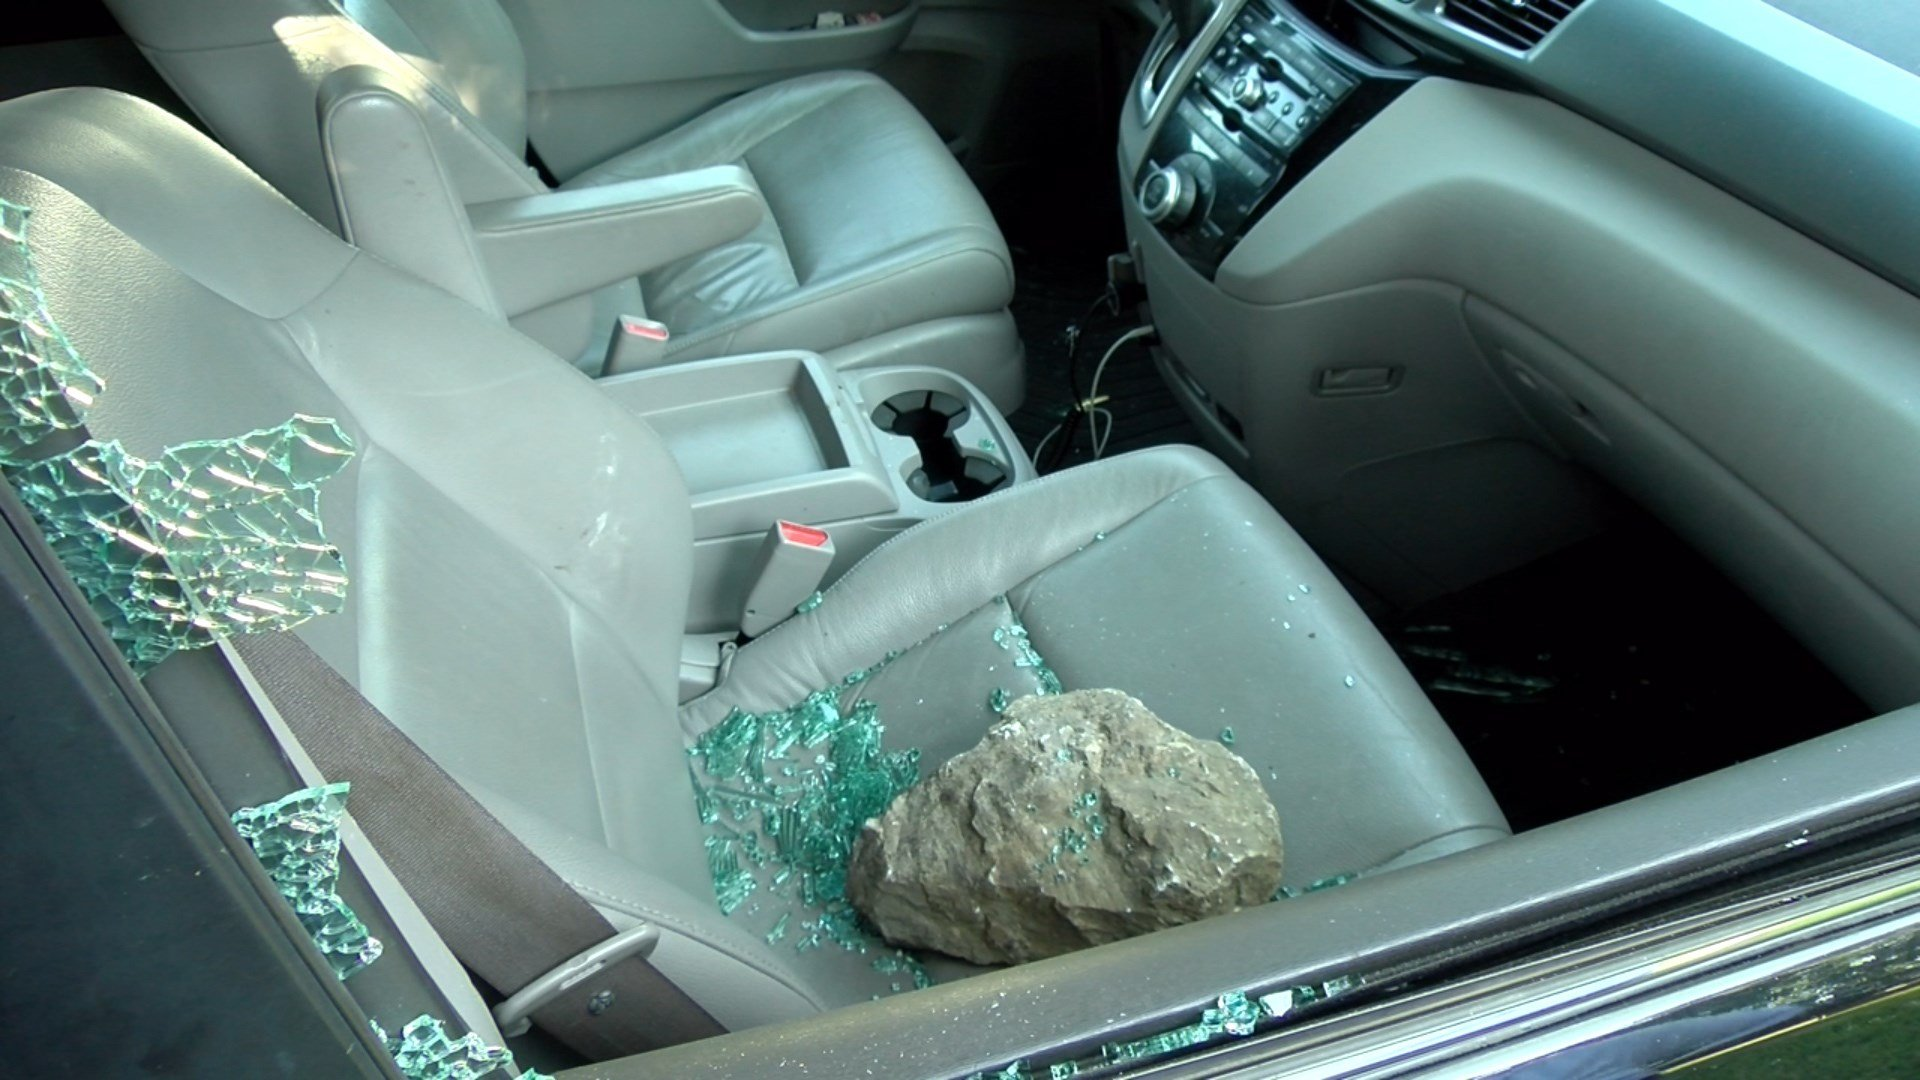 There S Been A String Of Car Break Ins At Holmes Lake